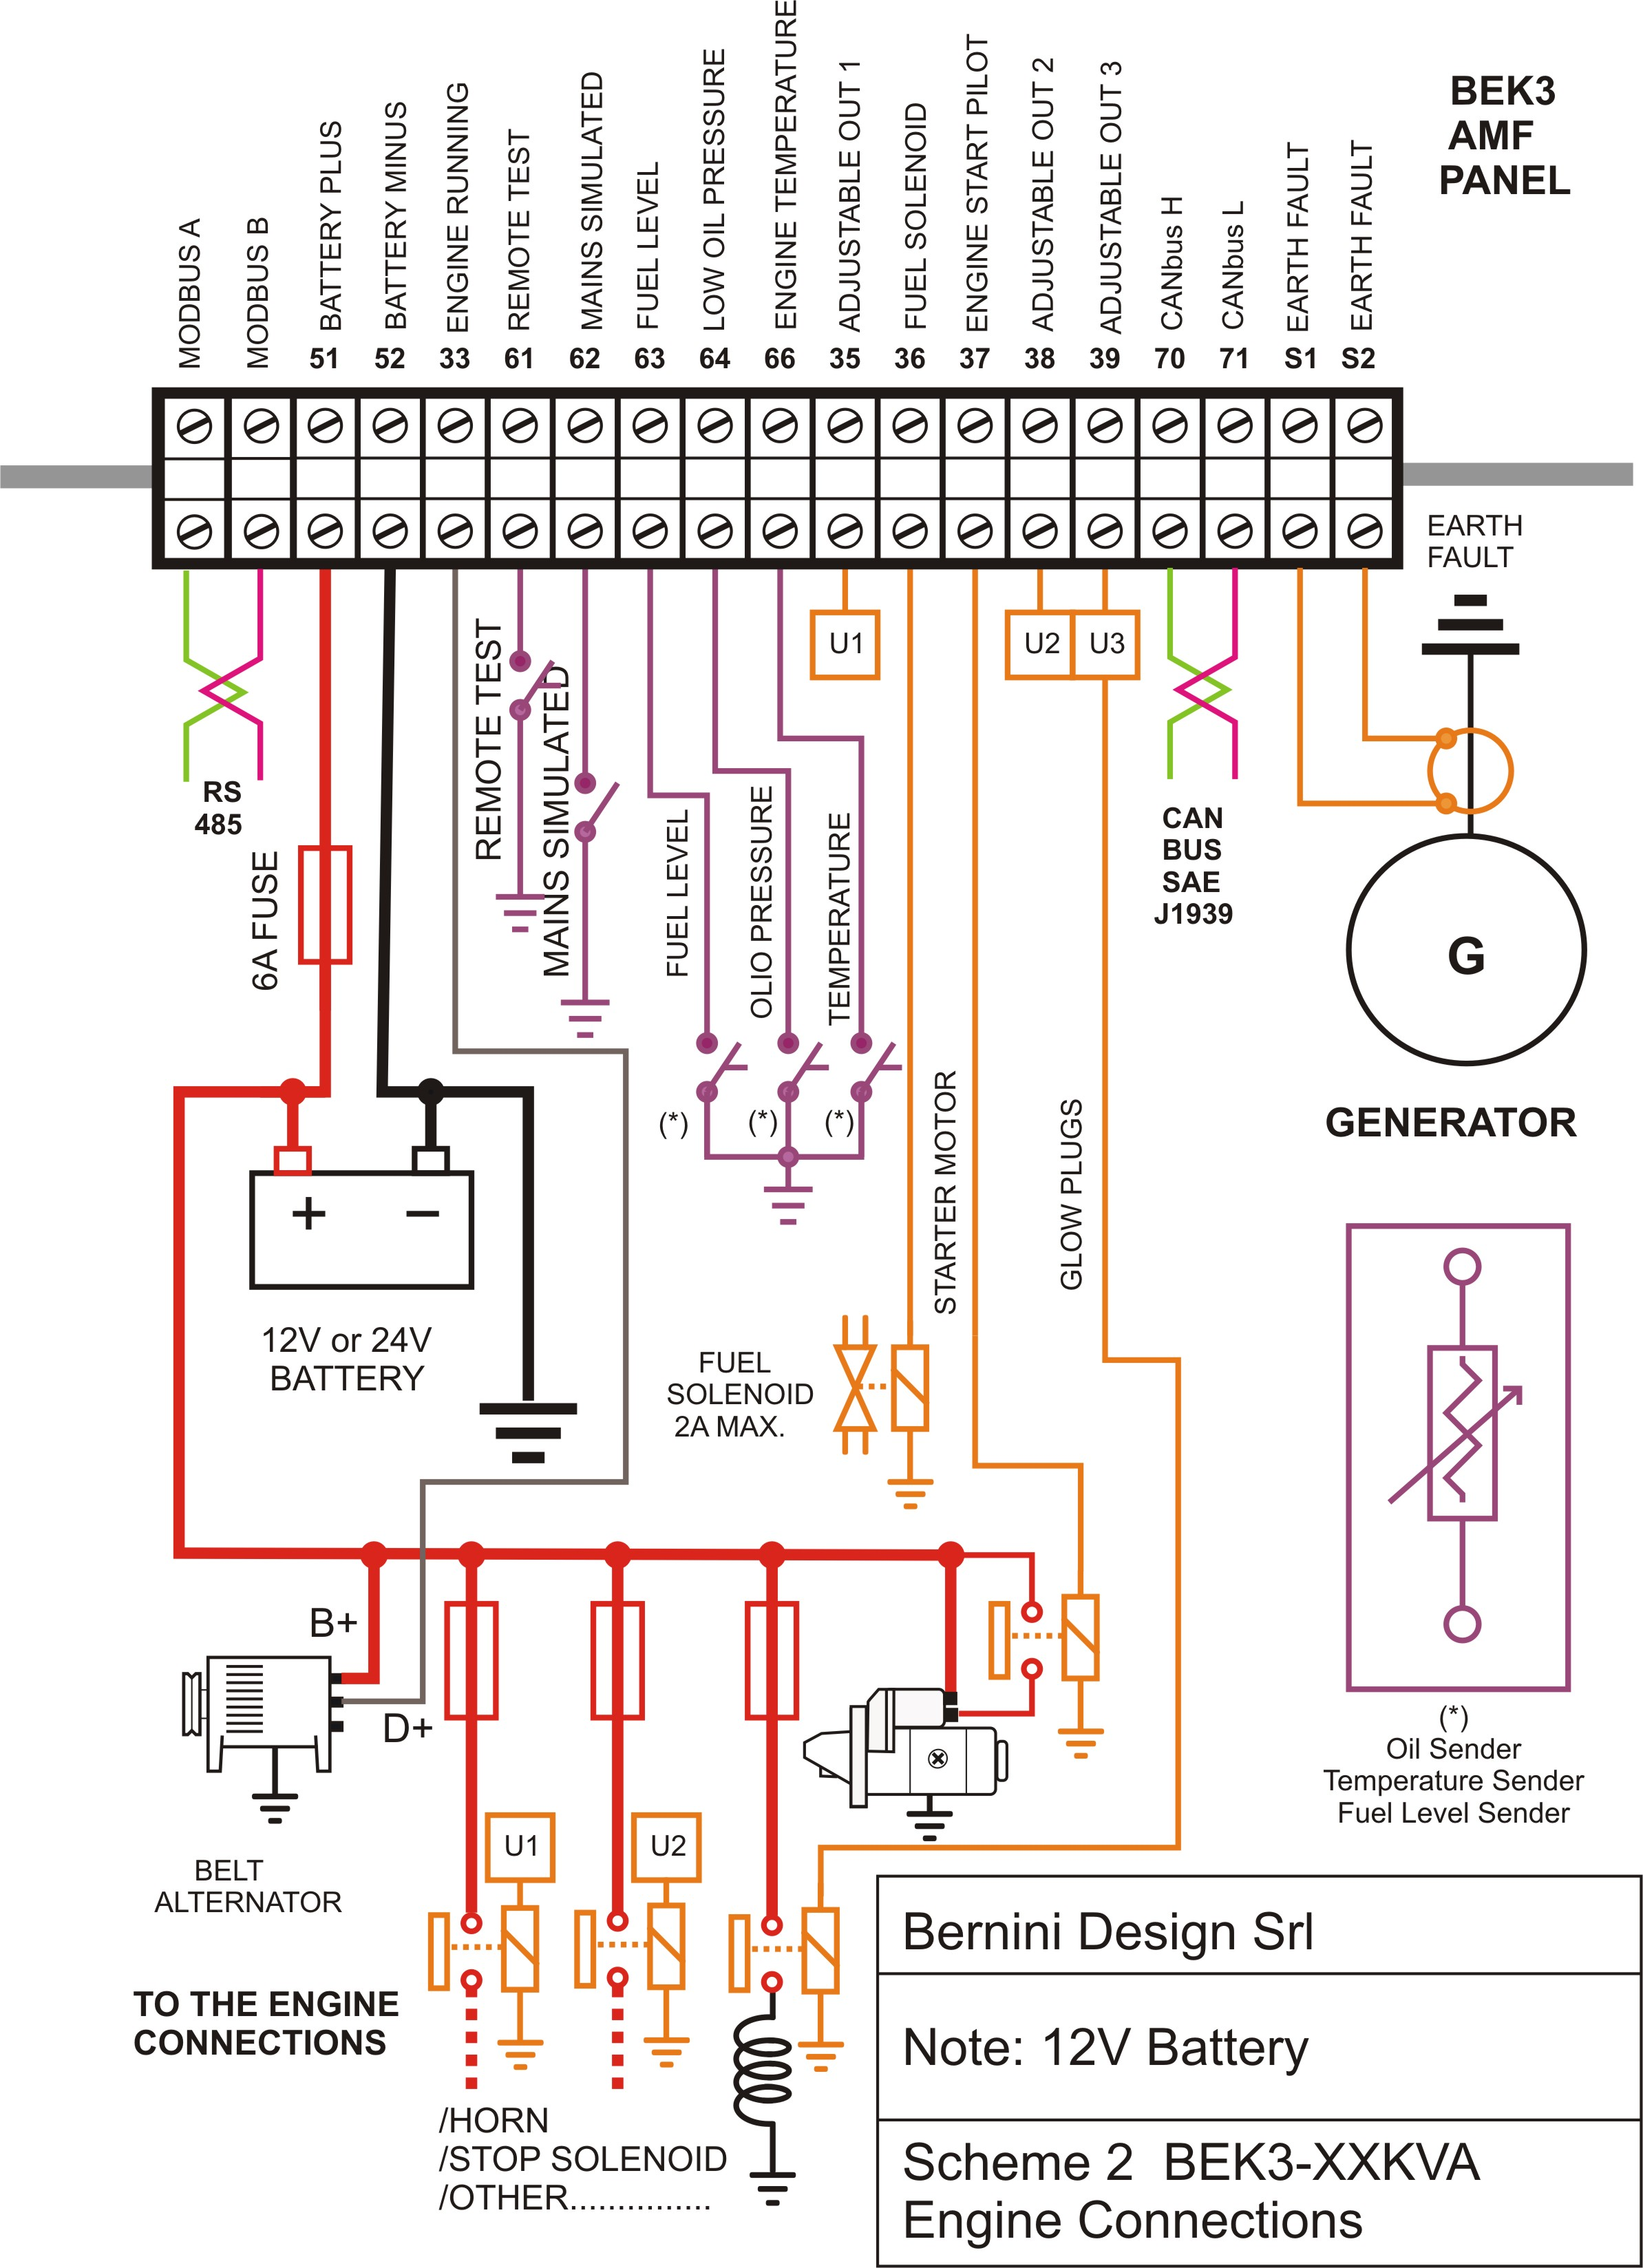 AMF Control Panel Circuit Diagram PDF Engine Connections dse704 wiring diagram gmc fuse box diagrams \u2022 wiring diagrams j beka max wiring diagram at reclaimingppi.co